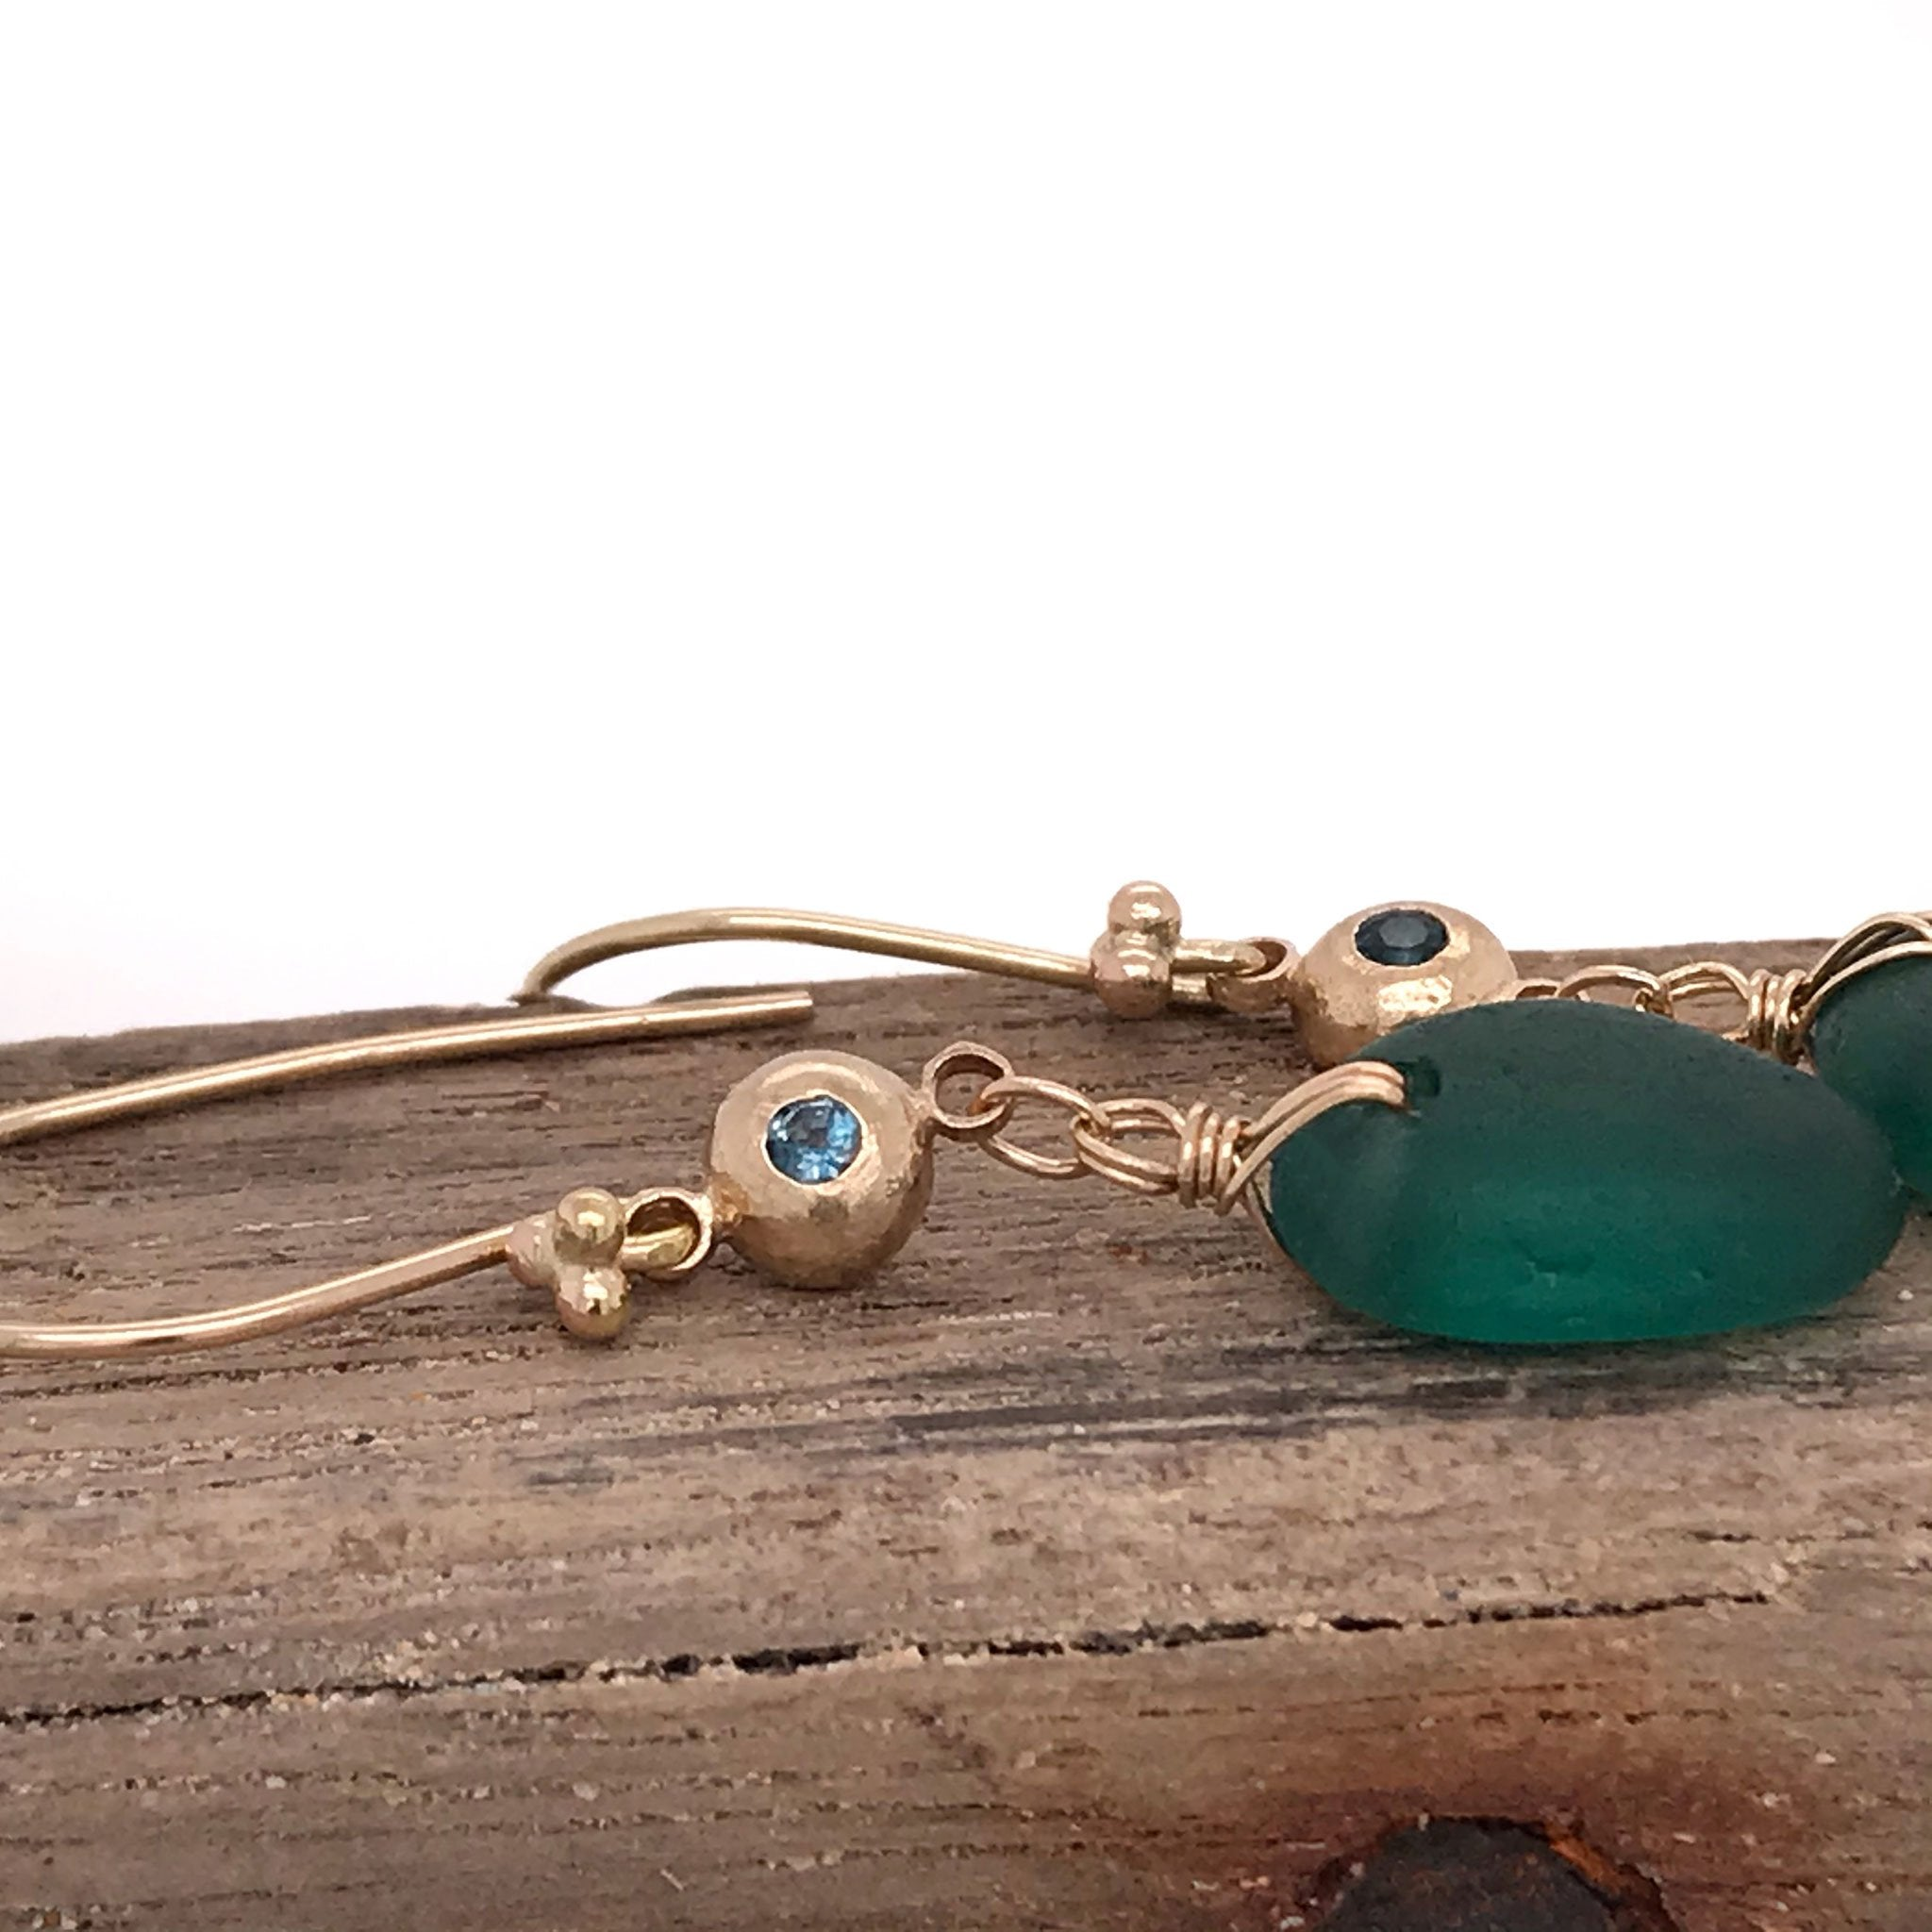 14k gold earrings with solid gold pebbles and rare teal seaglass Kriket Broadhurst jewelry